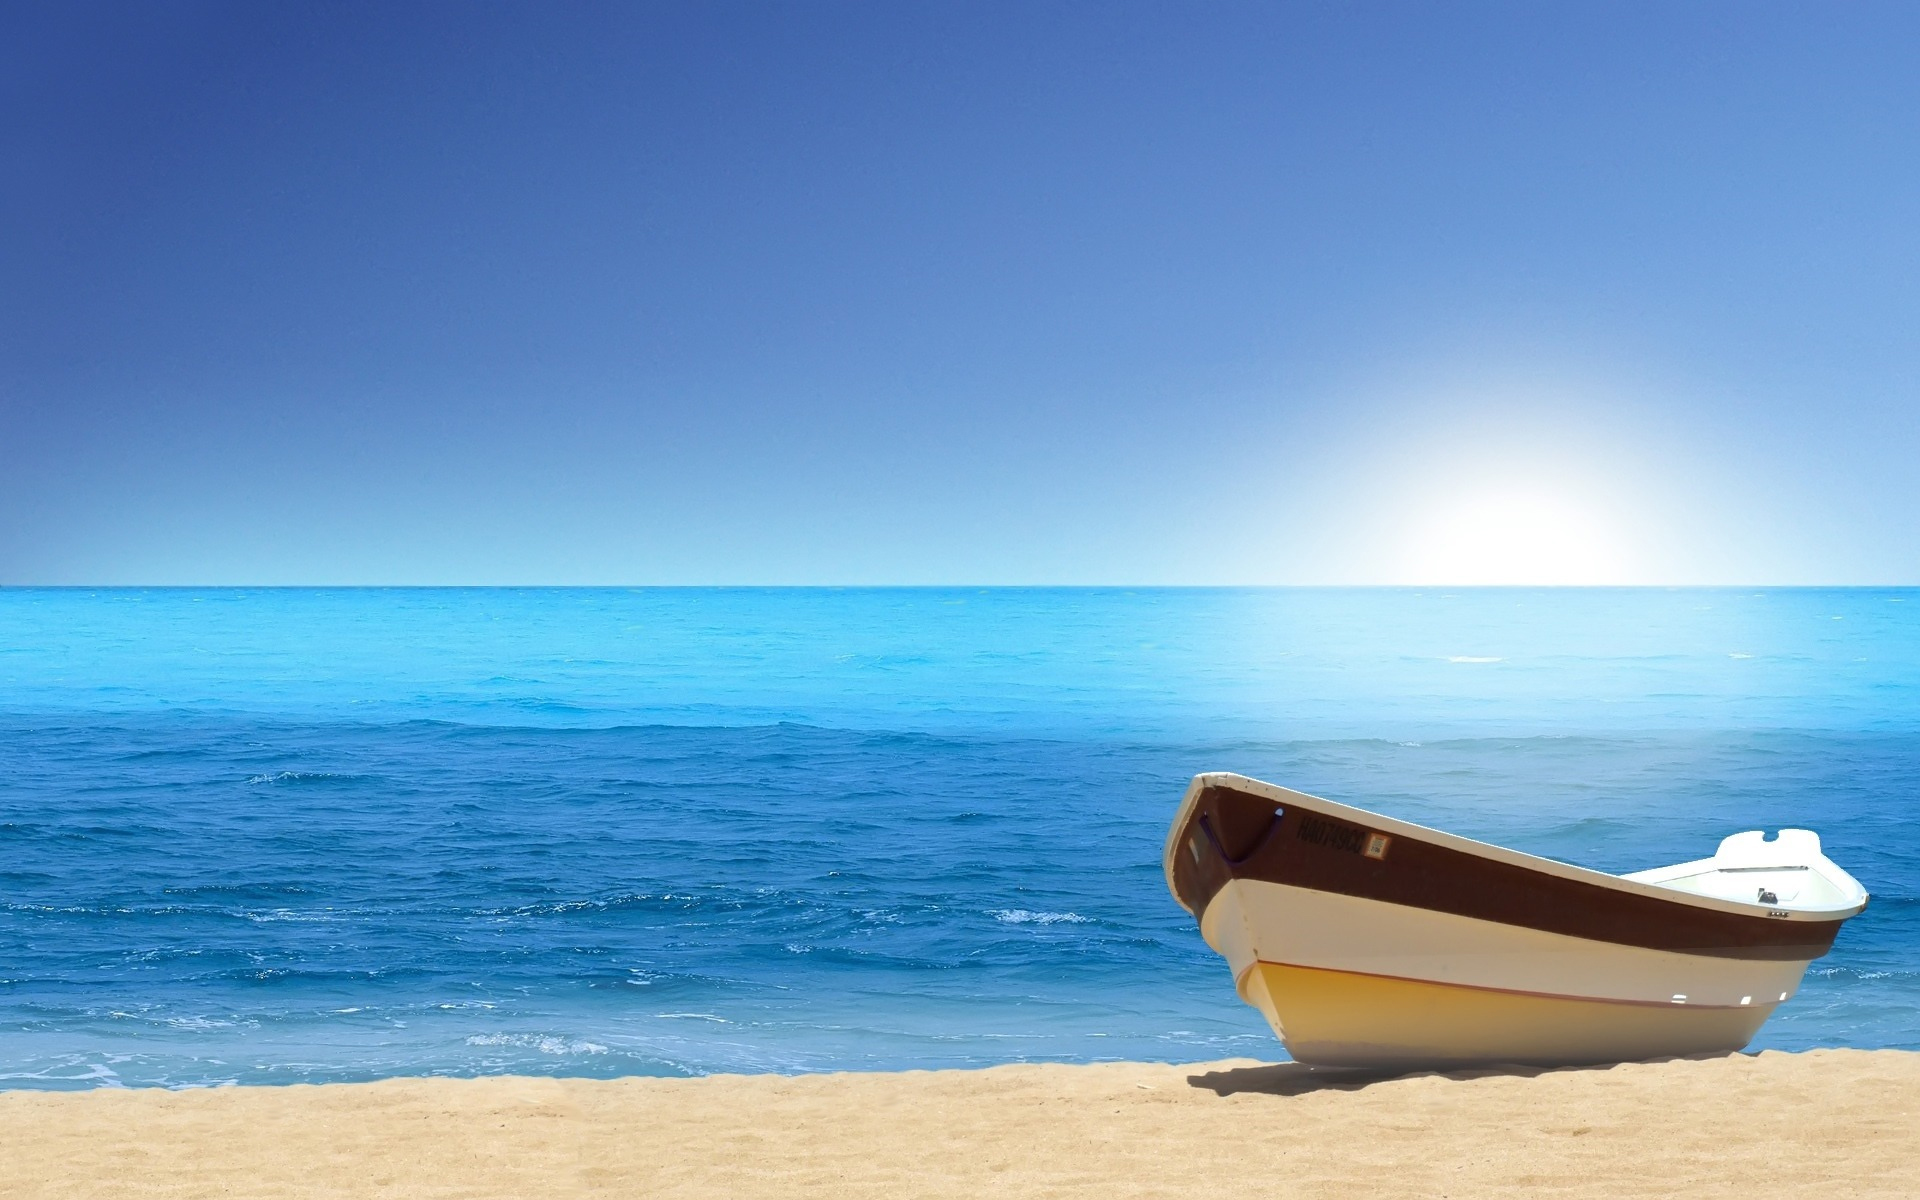 hd beach backgrounds - wallpapersafari